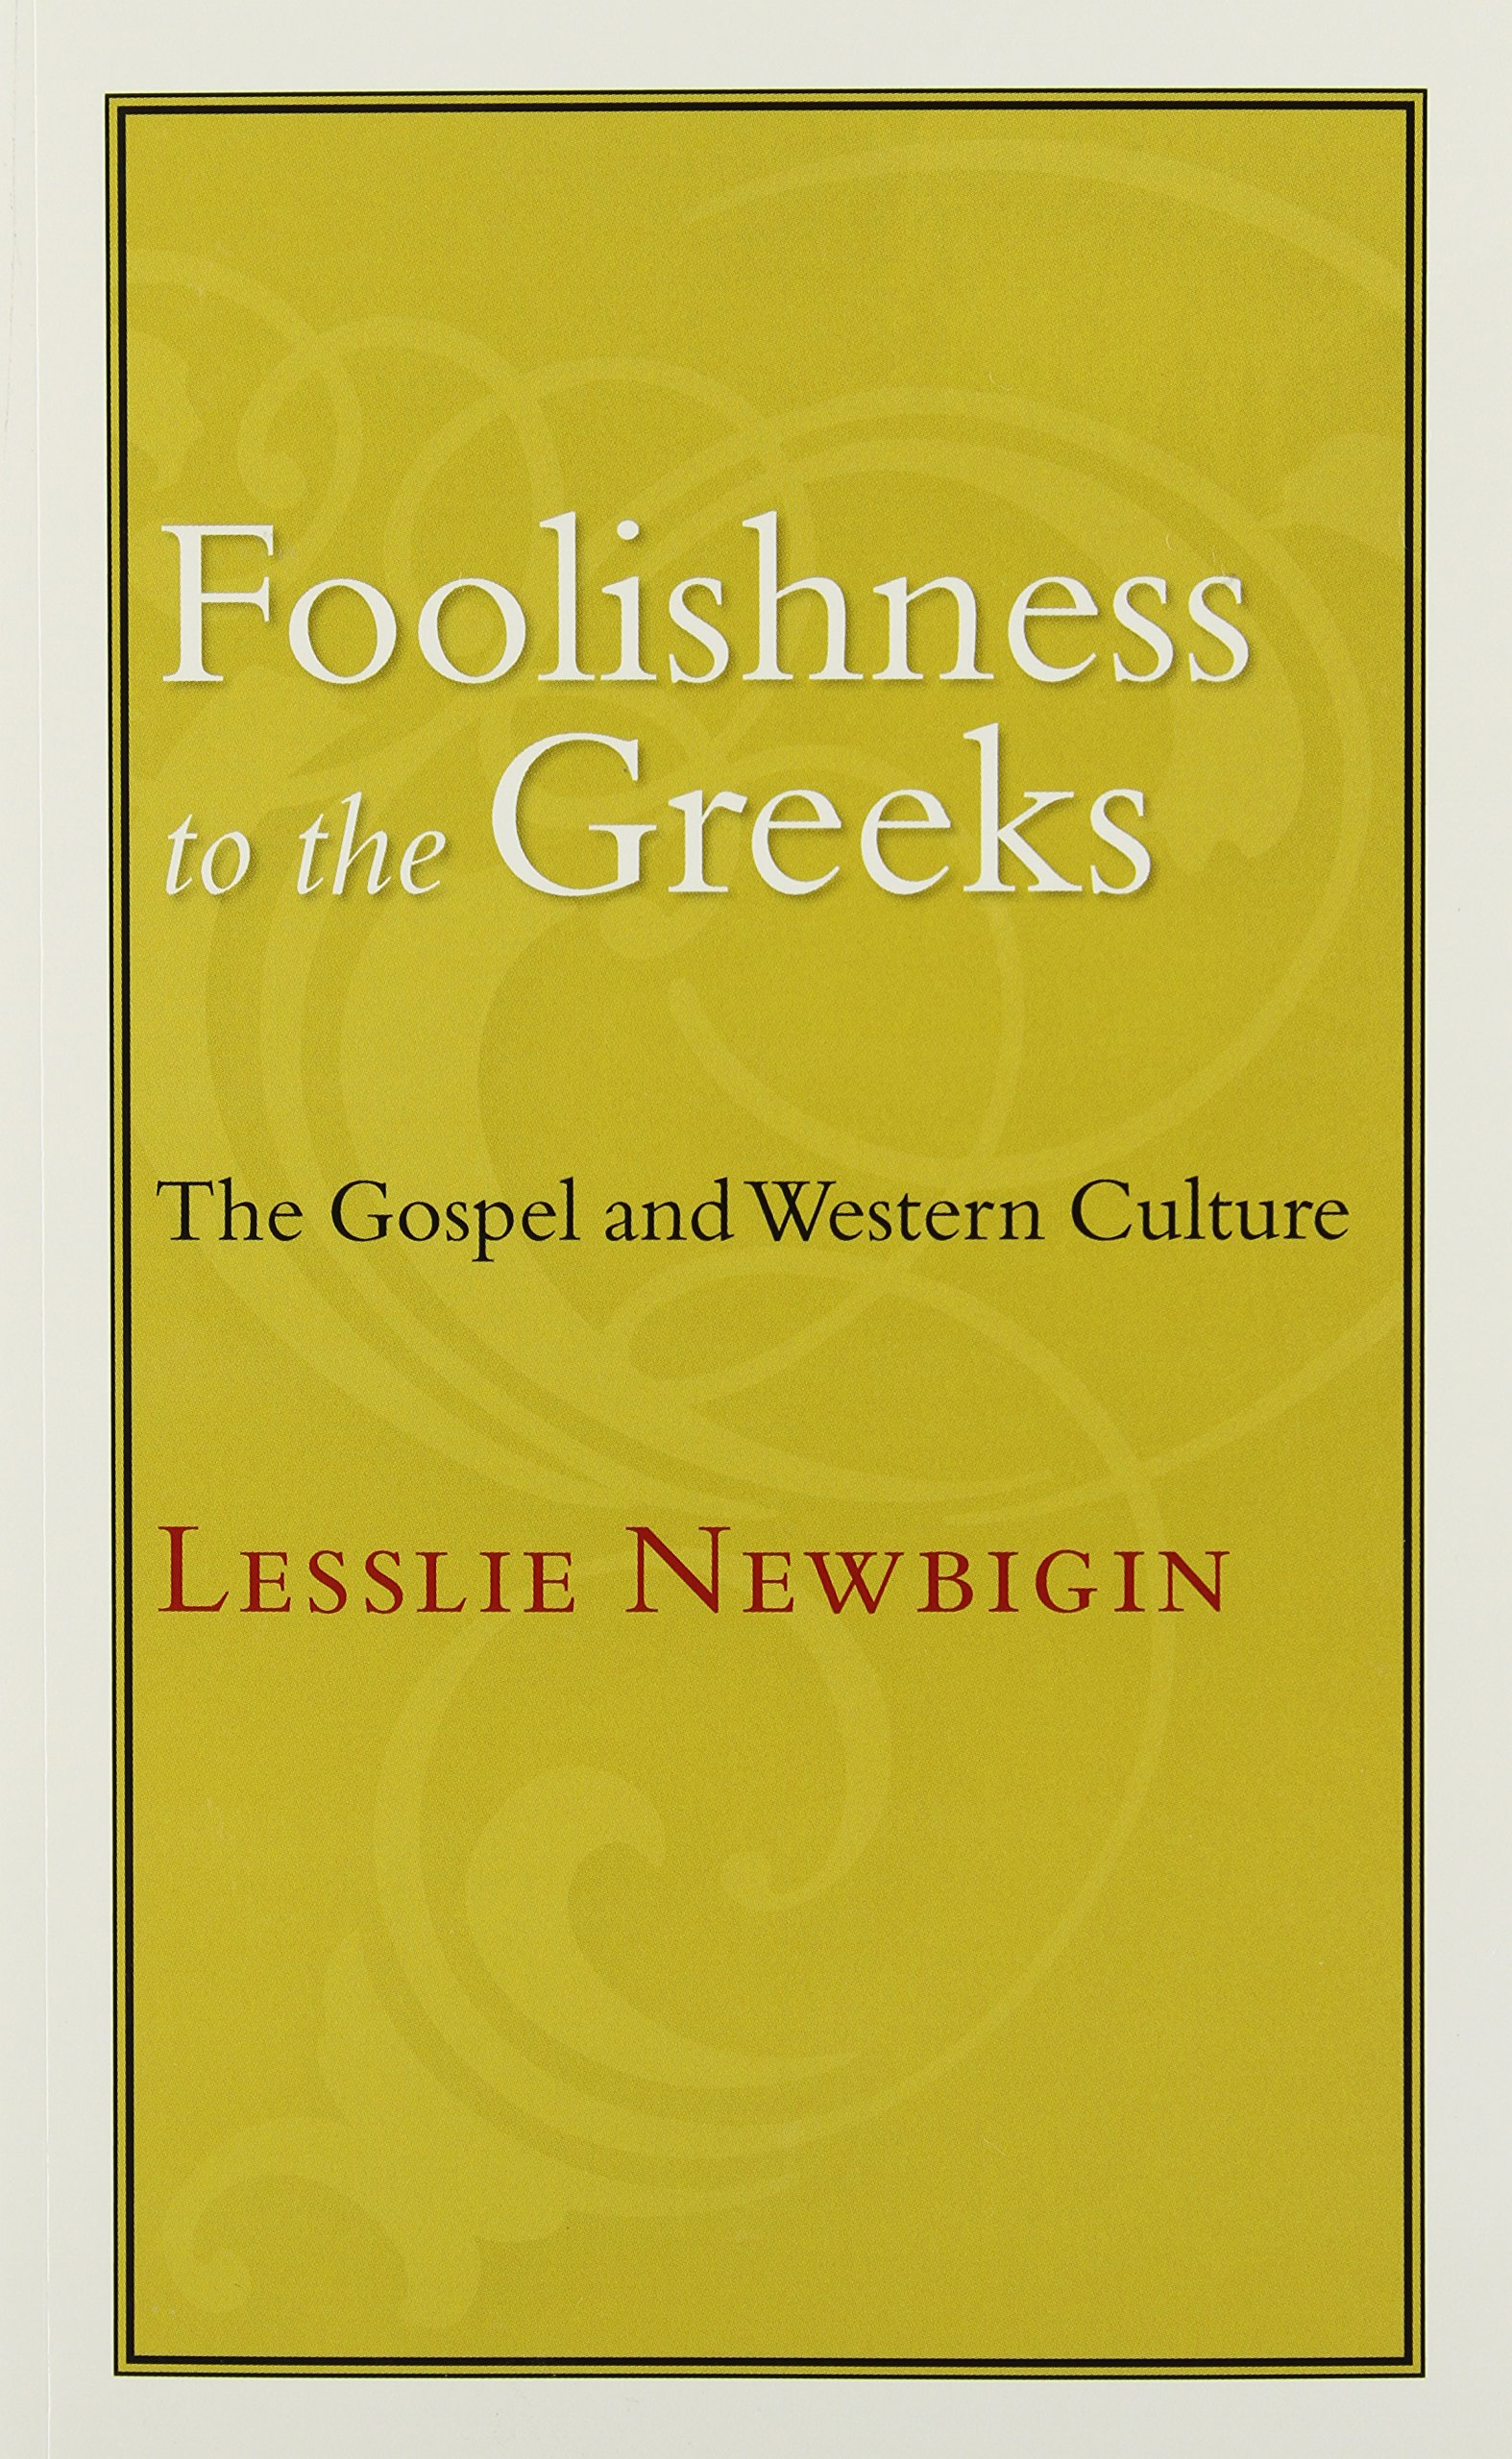 Foolishness to the Greeks: The Gospel and Western